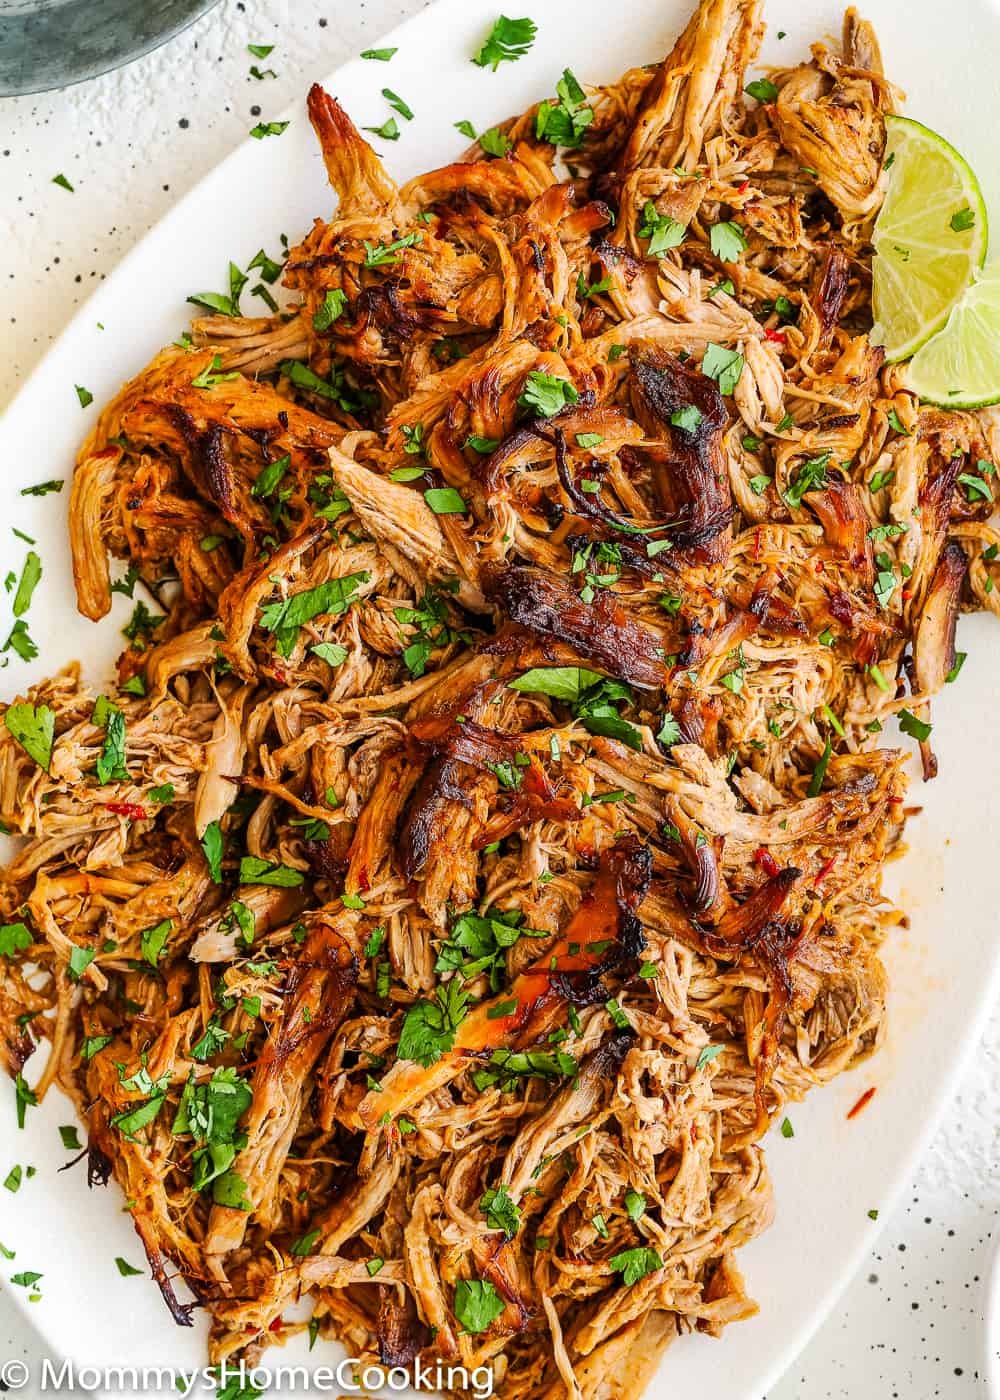 Slow cooker crispy chipotle carnitas in a plate.